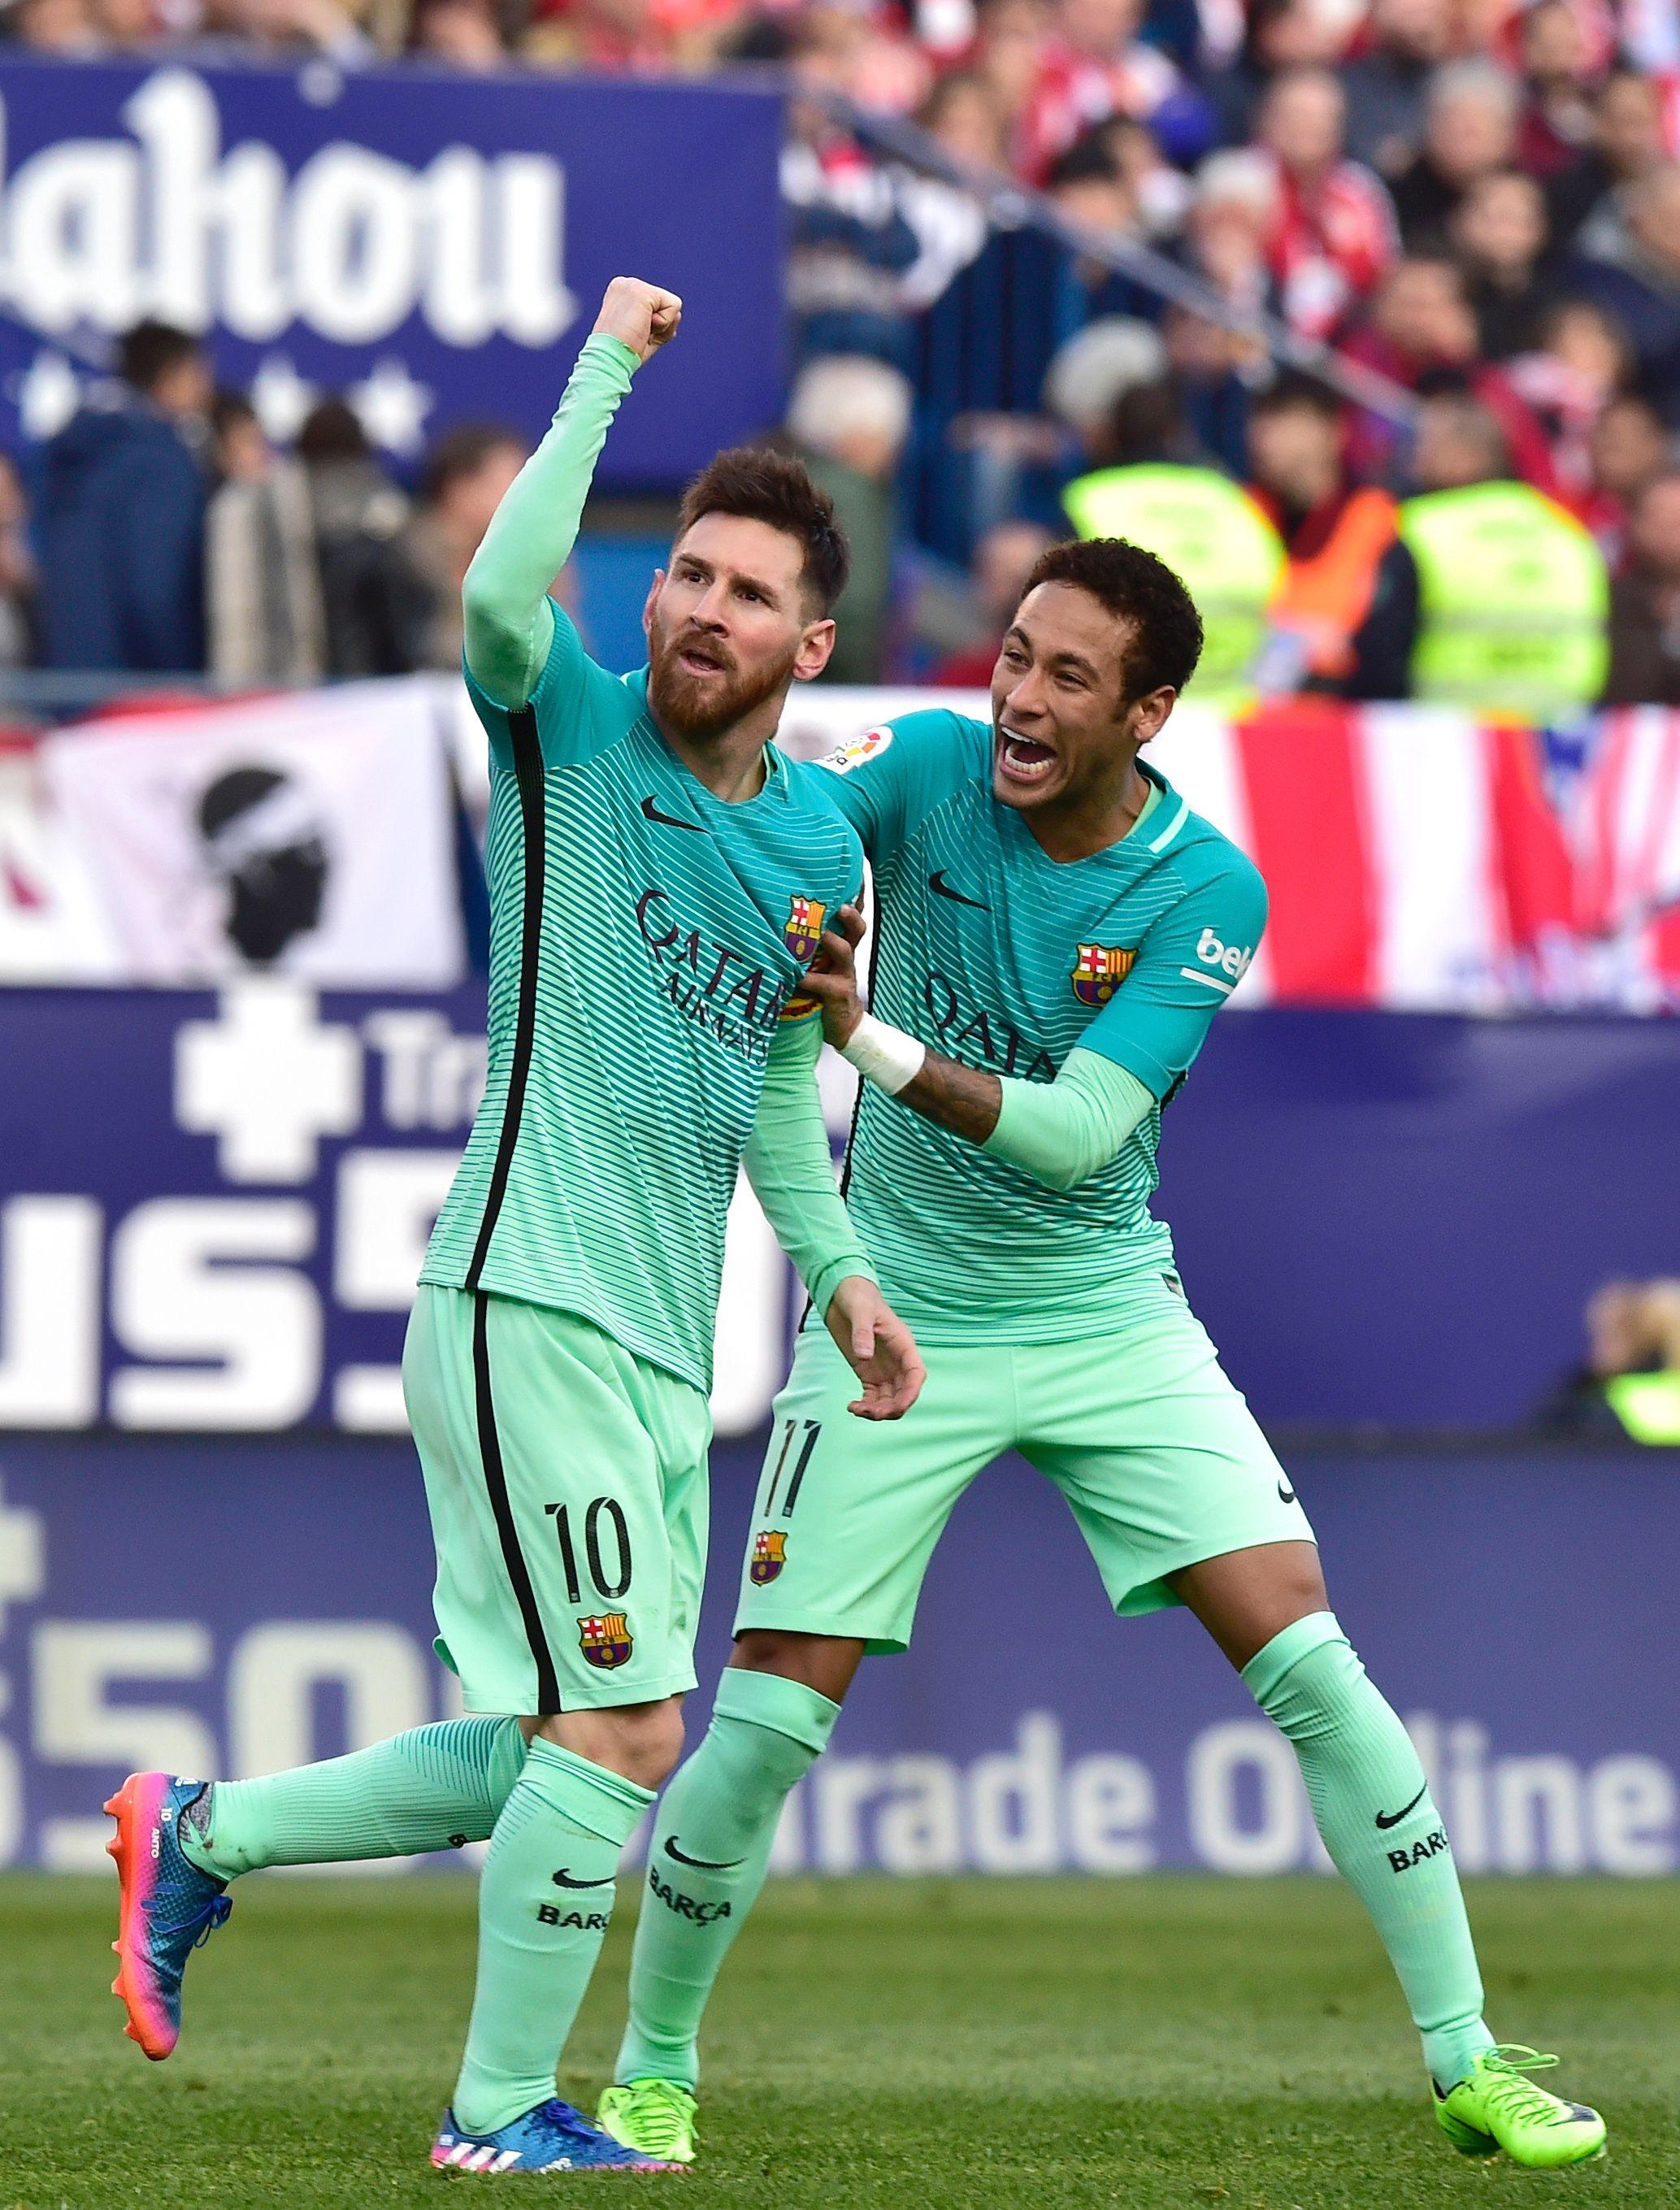 Neymar and Lionel Messi created unforgettable strike partnership